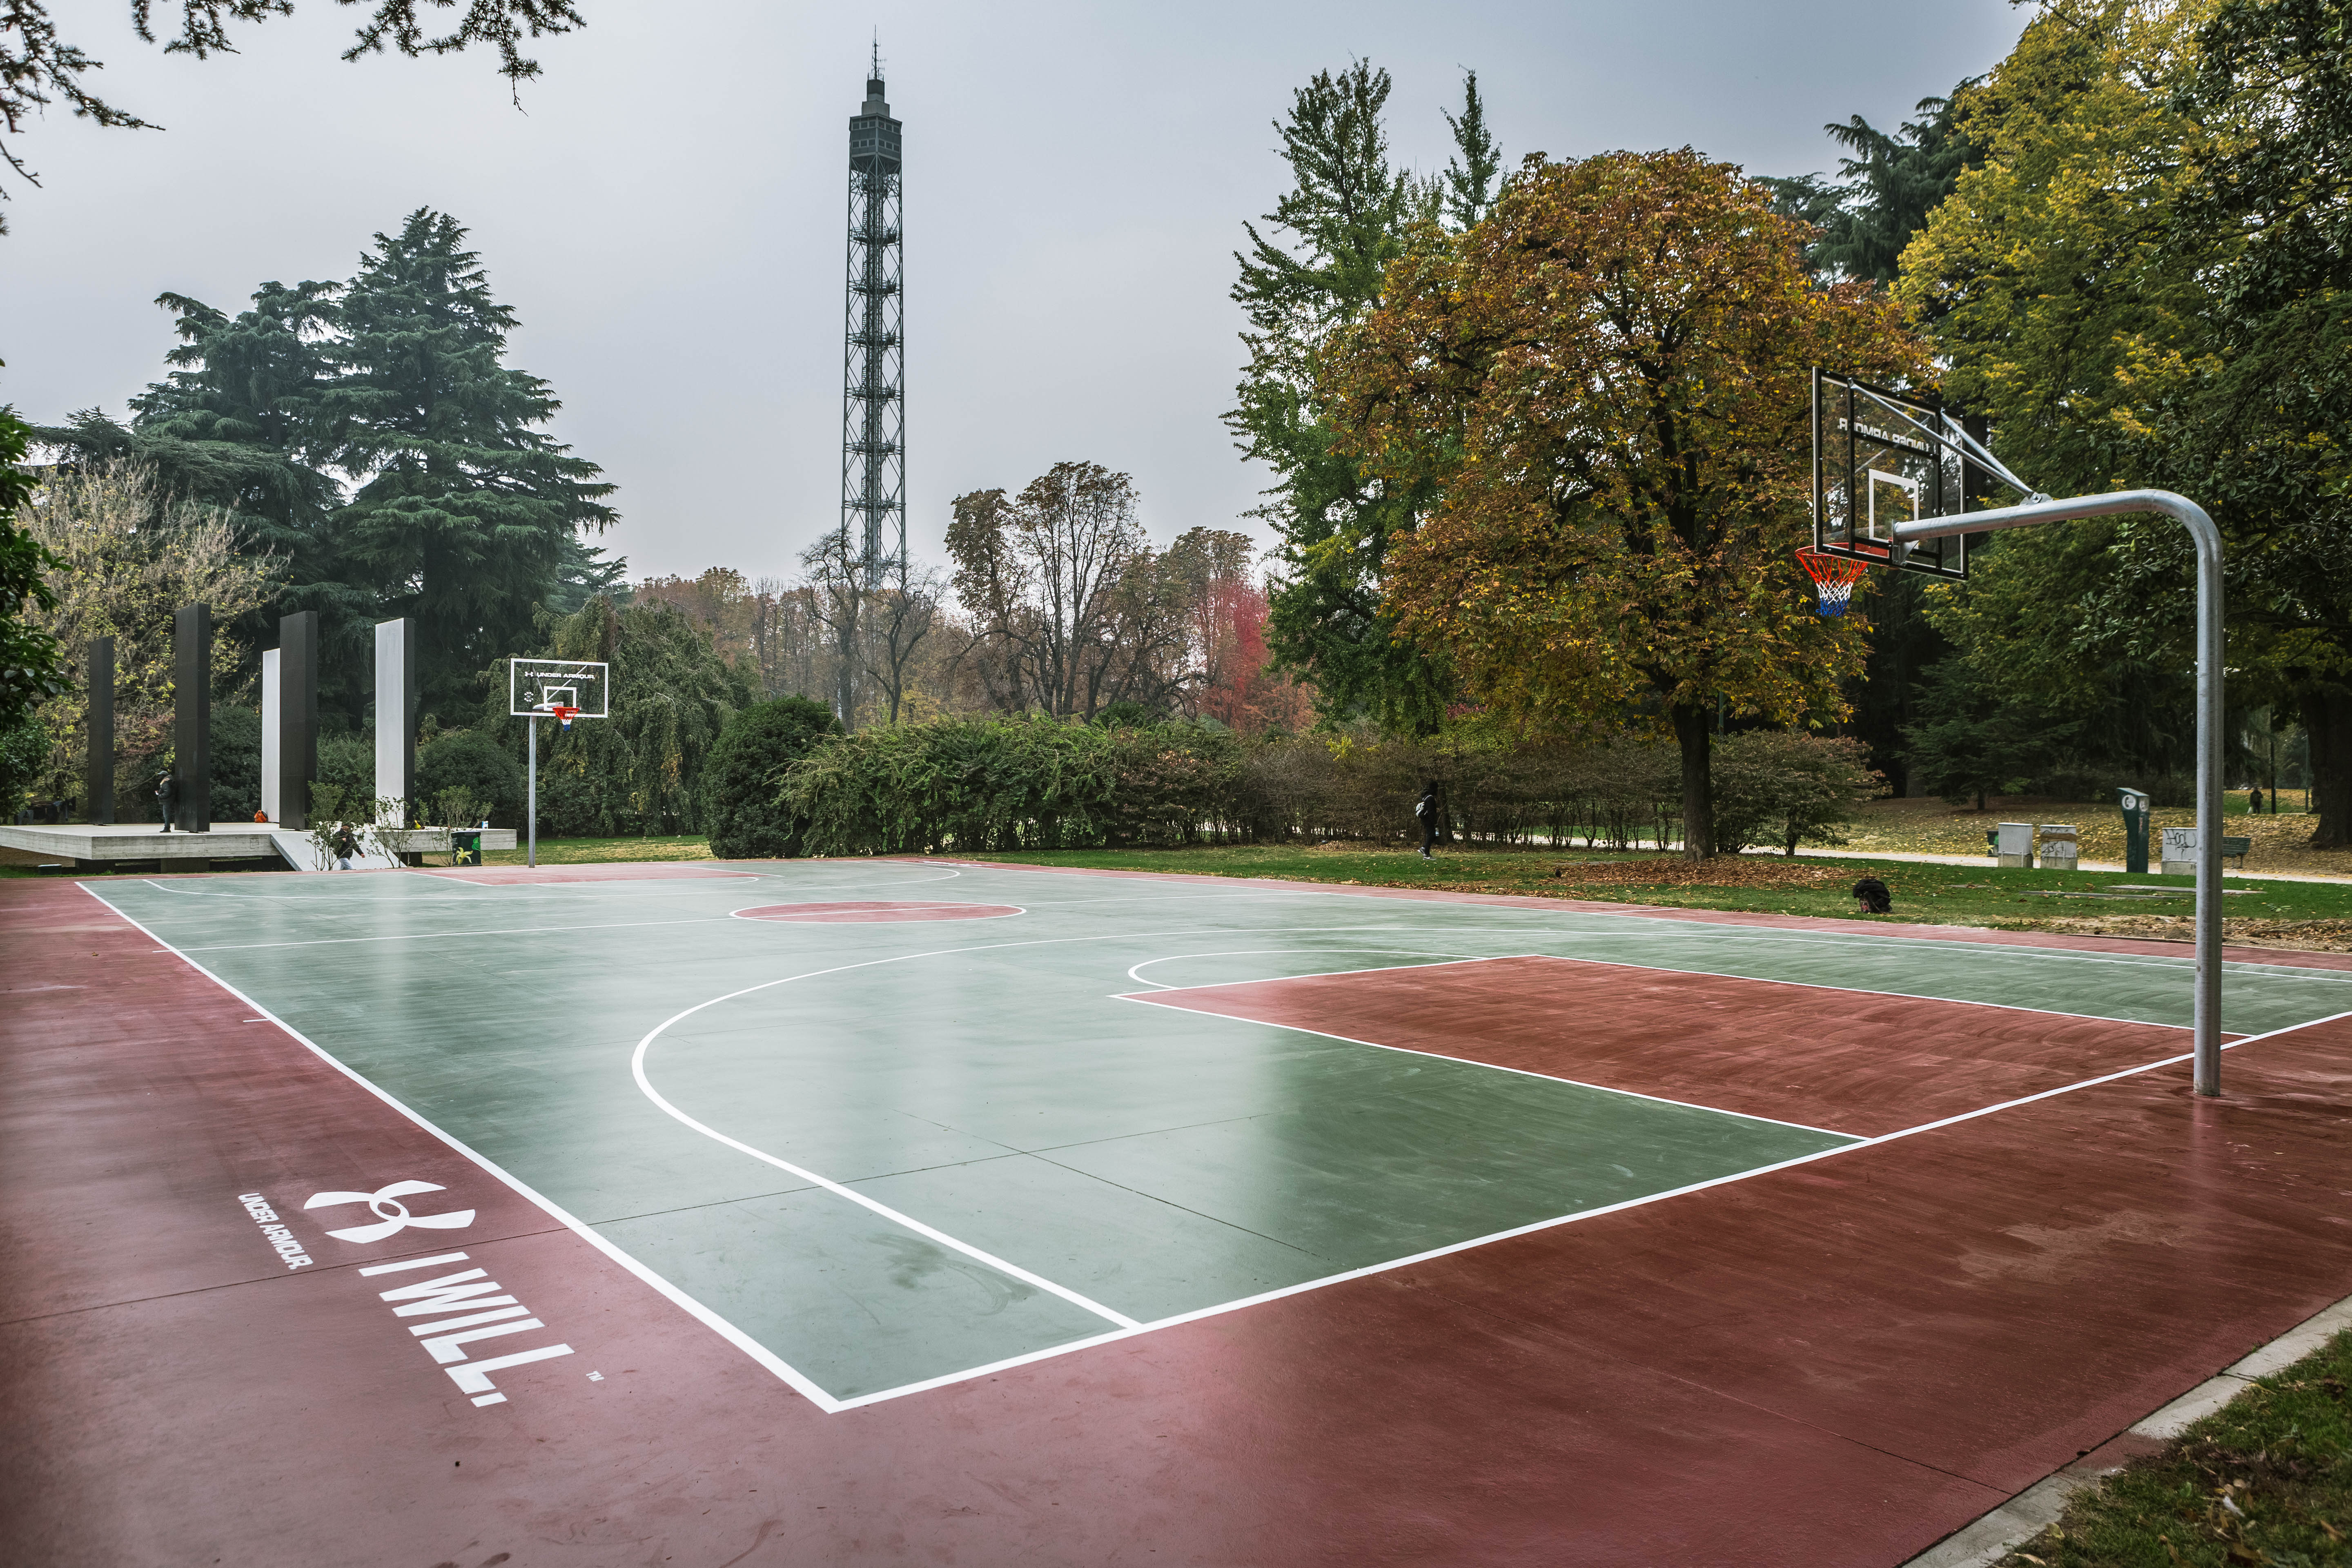 Under armour rinnova il campo da basket del parco sempione for Il campo da basket